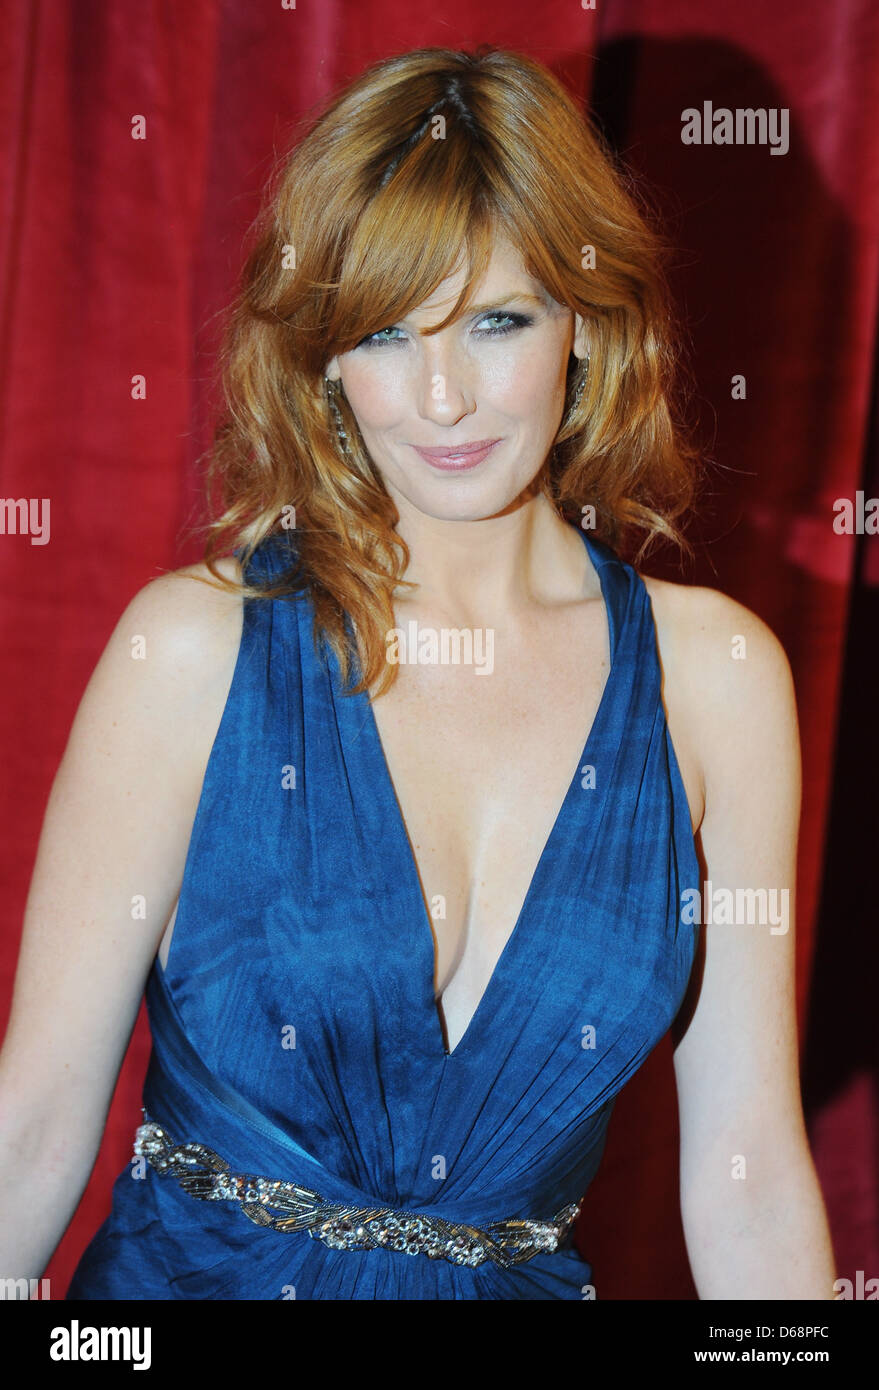 Kelly Reilly Nude Photos 8